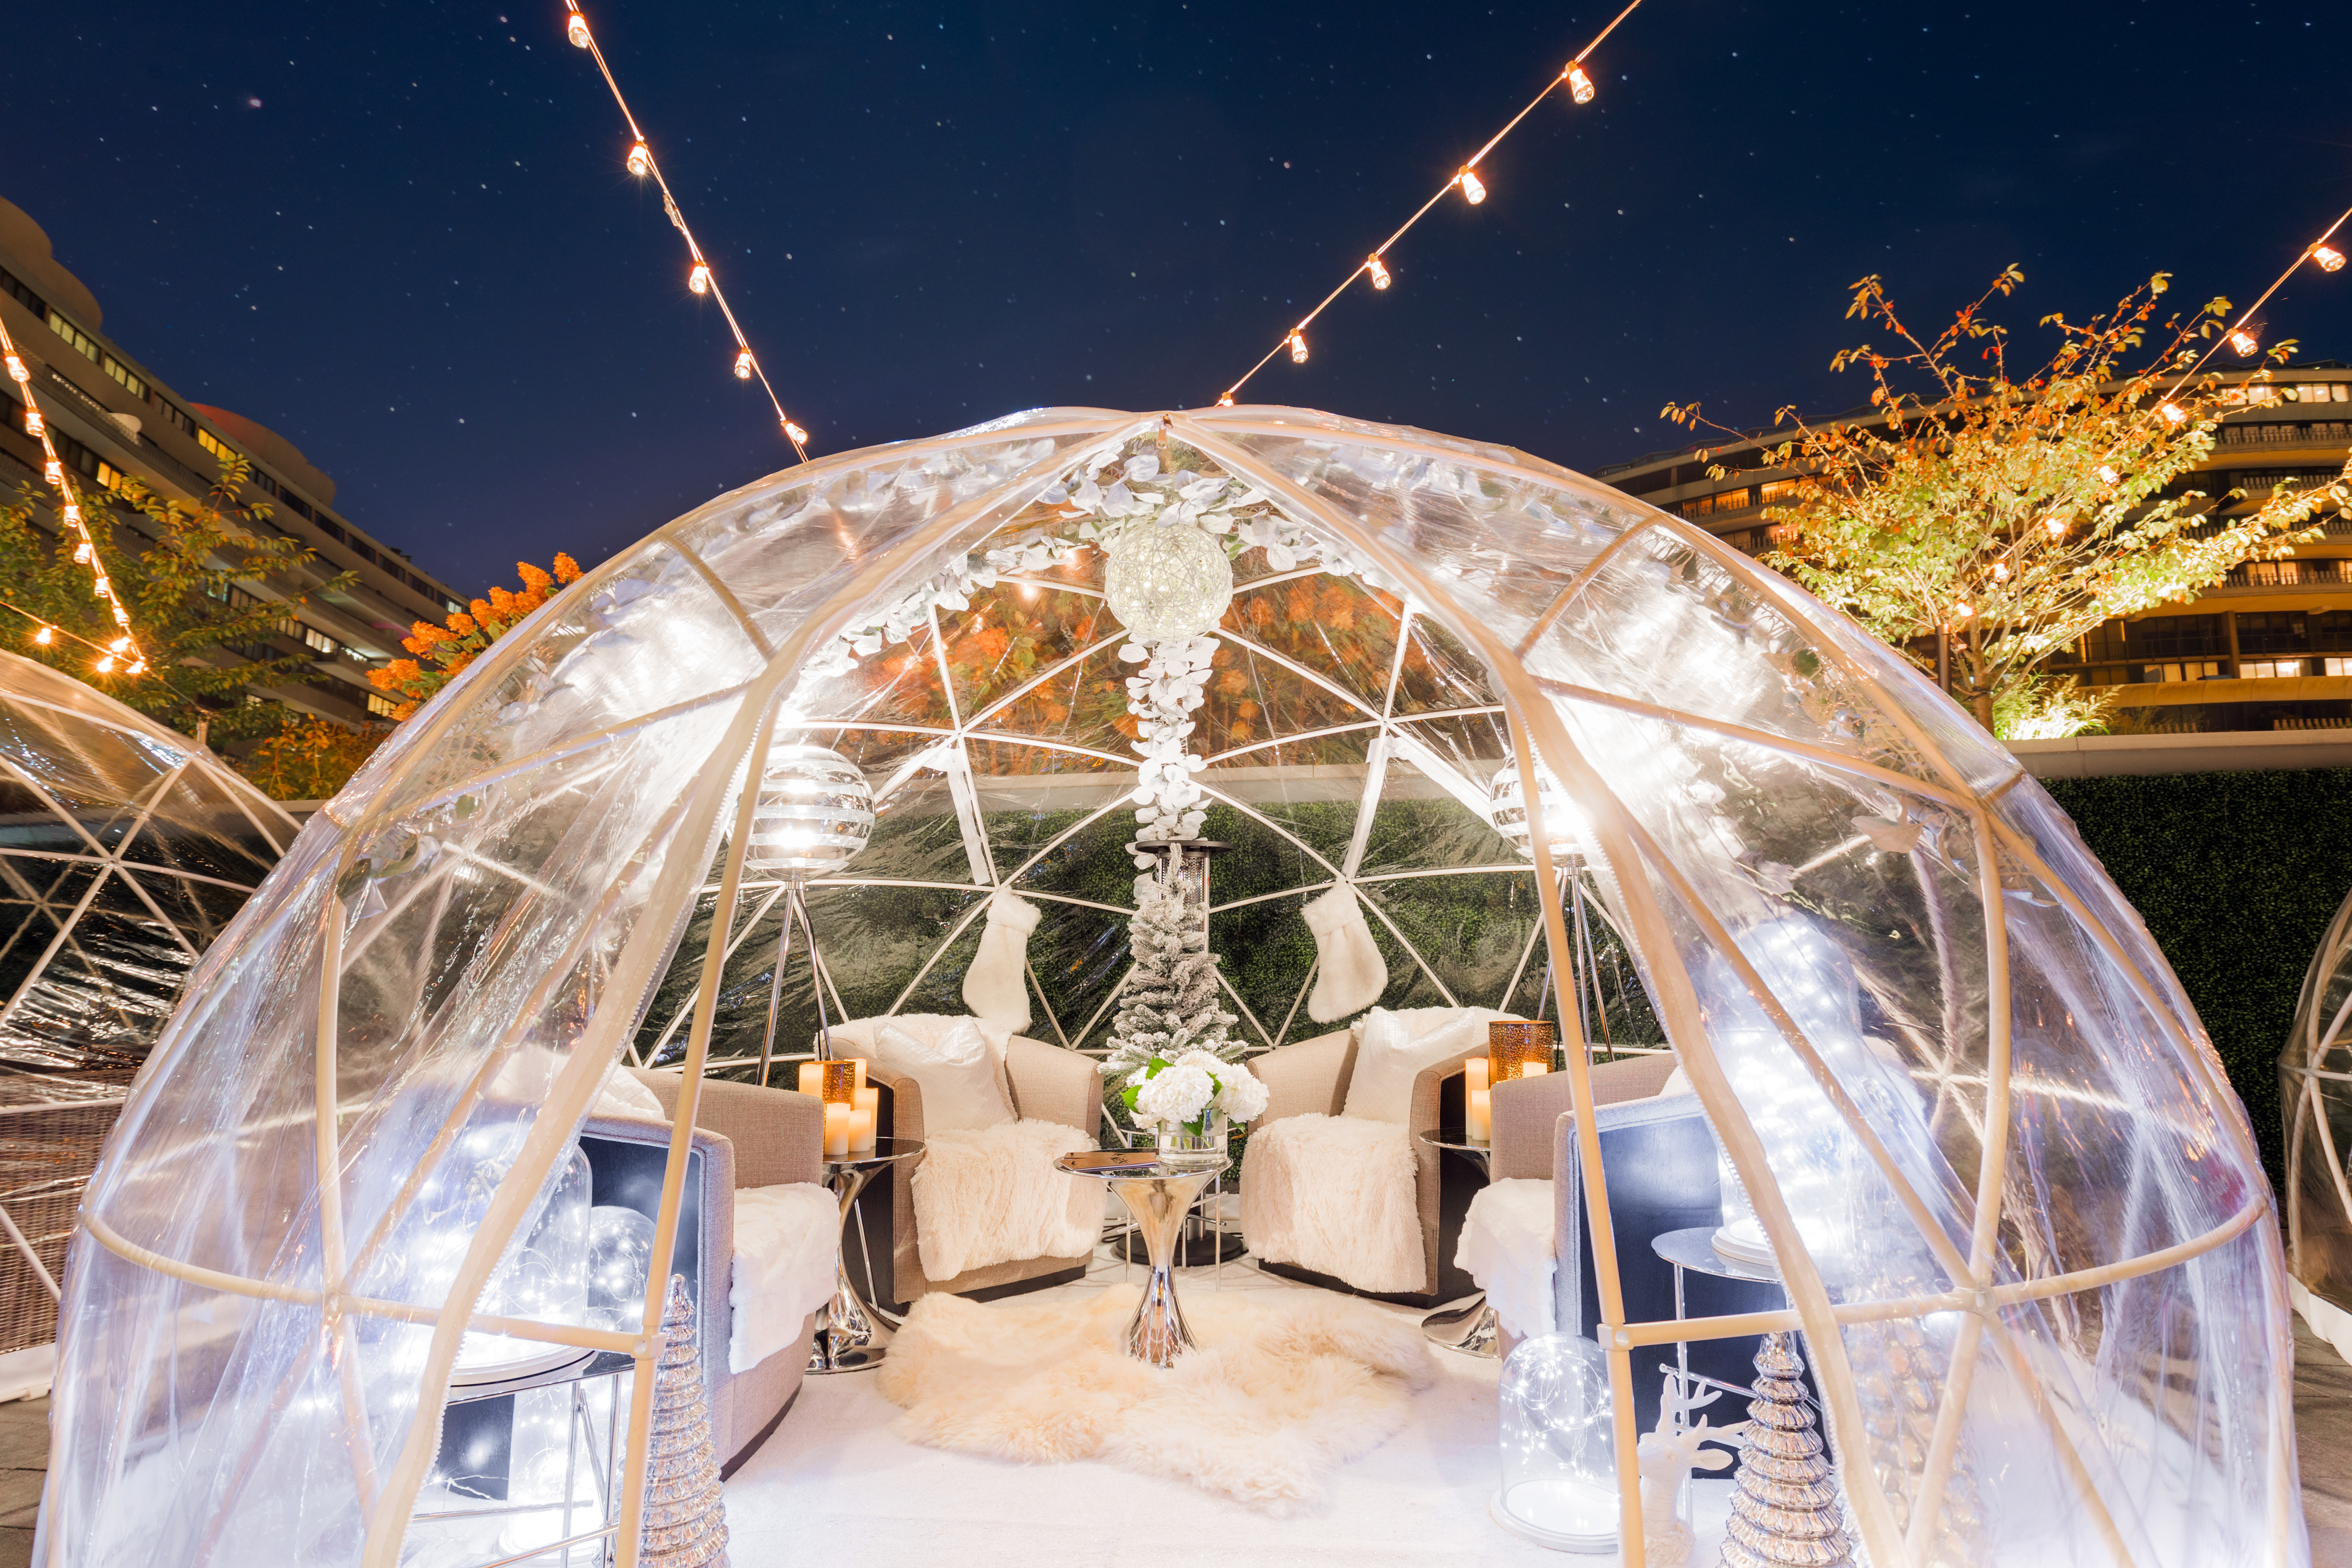 If you're looking for a slightly less active winter-themed activity, head downstairs and check out the The Next Whisky Bar's new igloo experiences. (Image: Courtesy Watergate Hotel)<p></p>